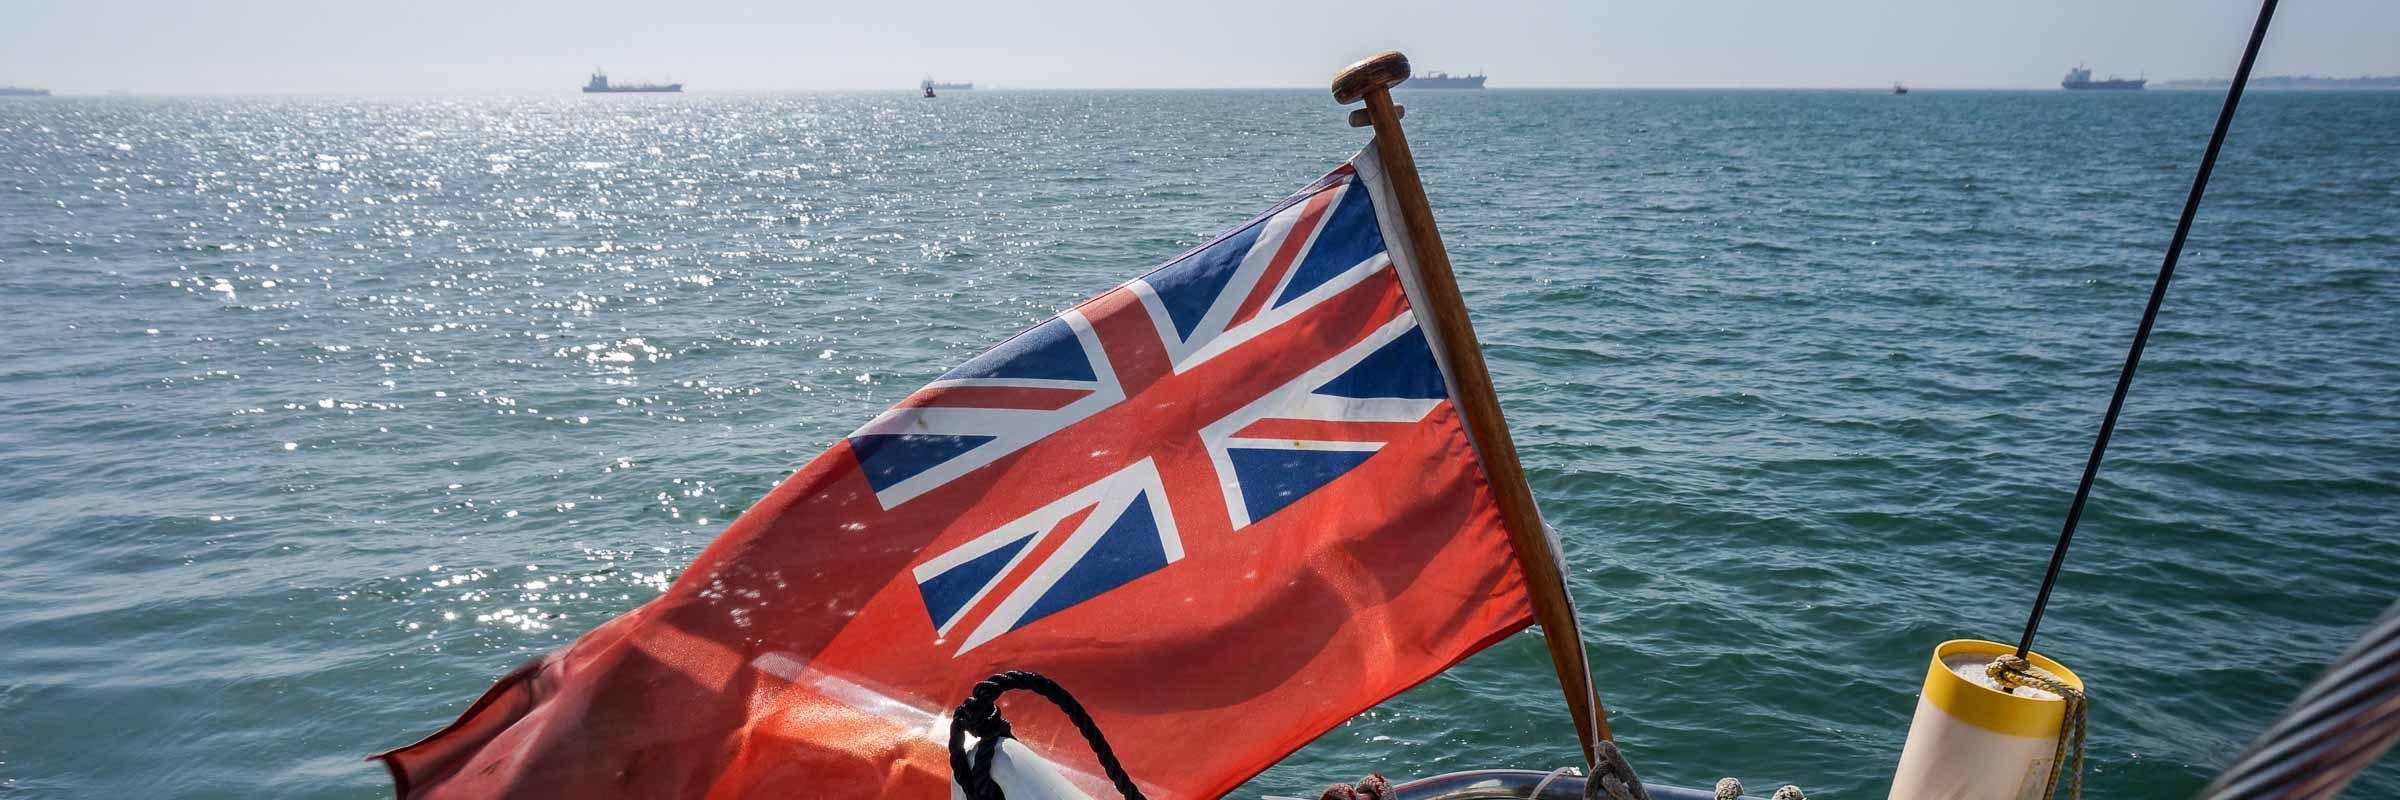 The British ensign